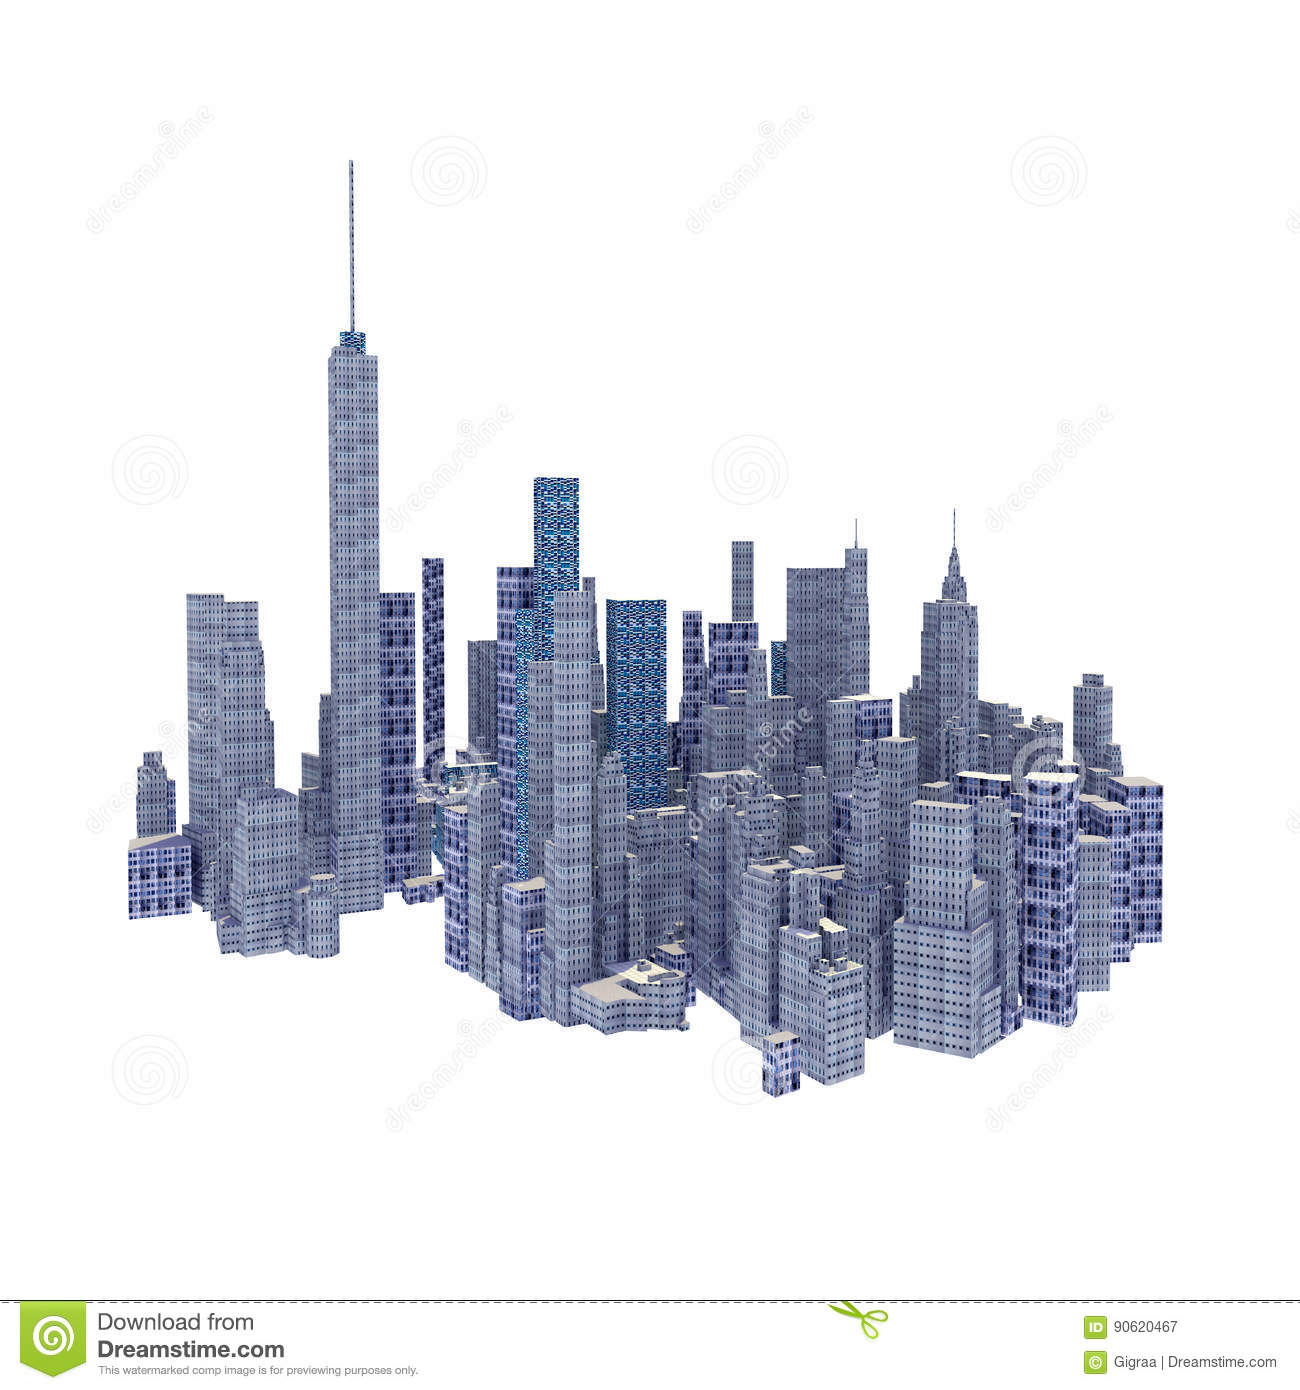 Rendered 3d city skyline isolated